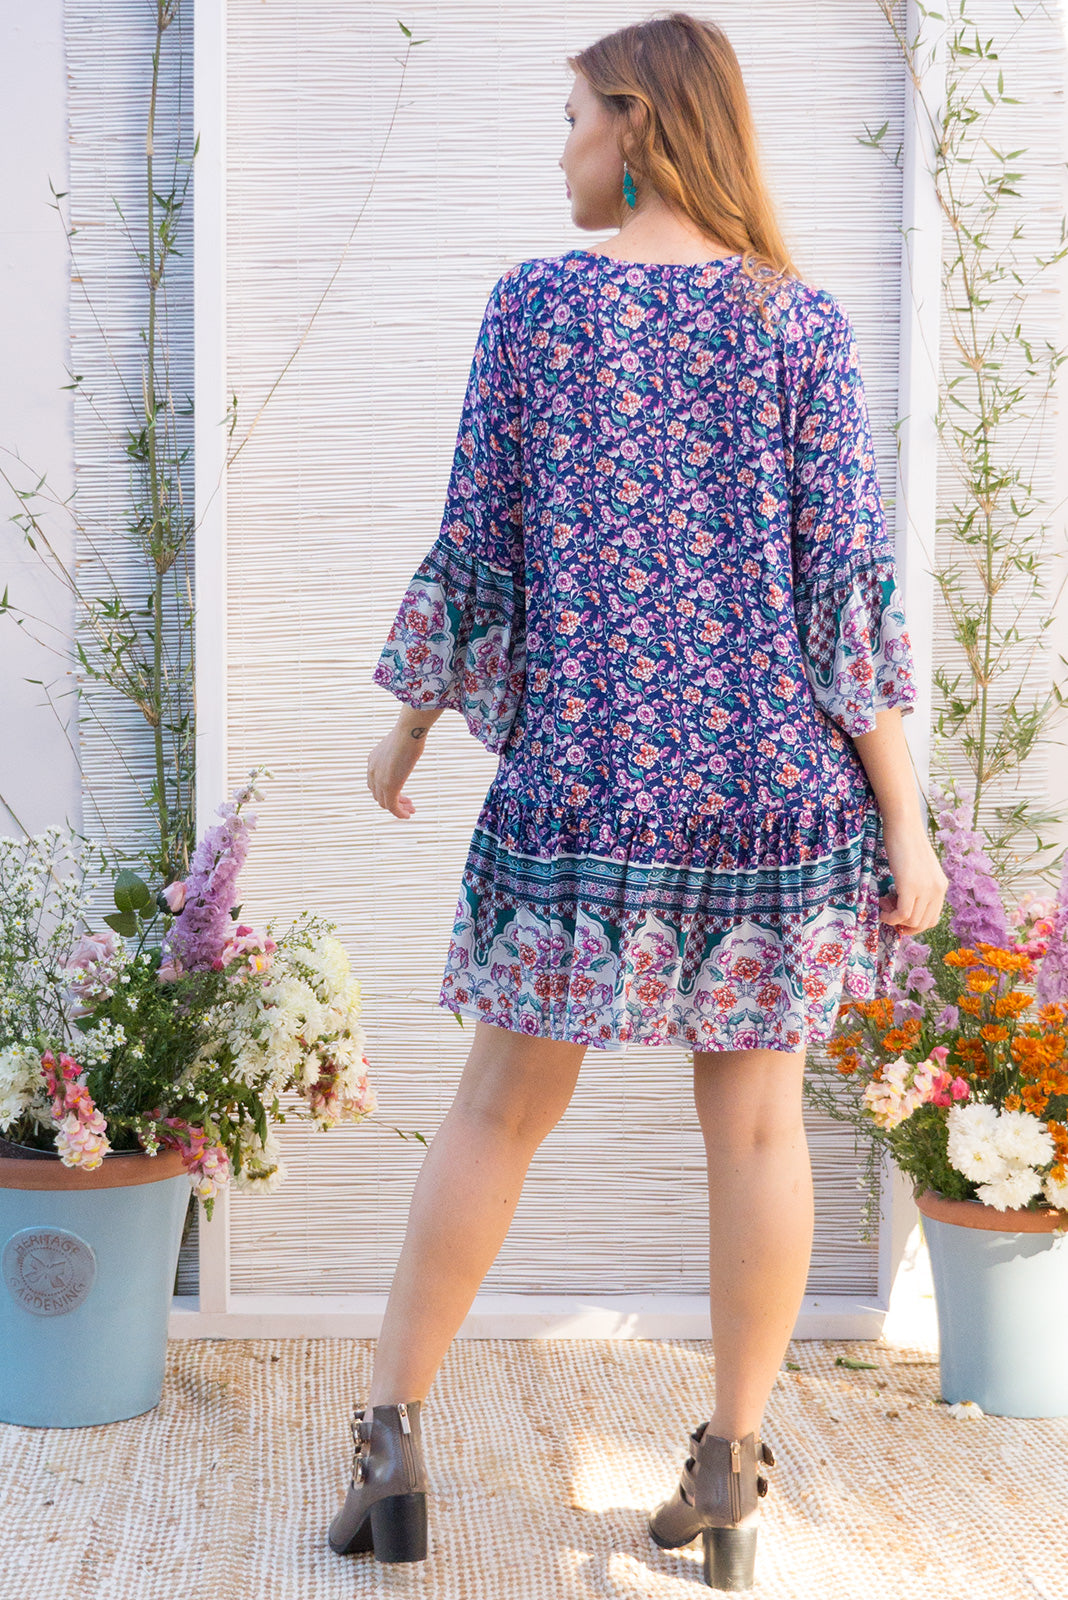 Moon Slice Navy Bliss Dress features a drop waist and 3/4 sleeves with a boho frill and a cord drawstring neck in a intricate boho border print in jewel tones on a soft woven rayon